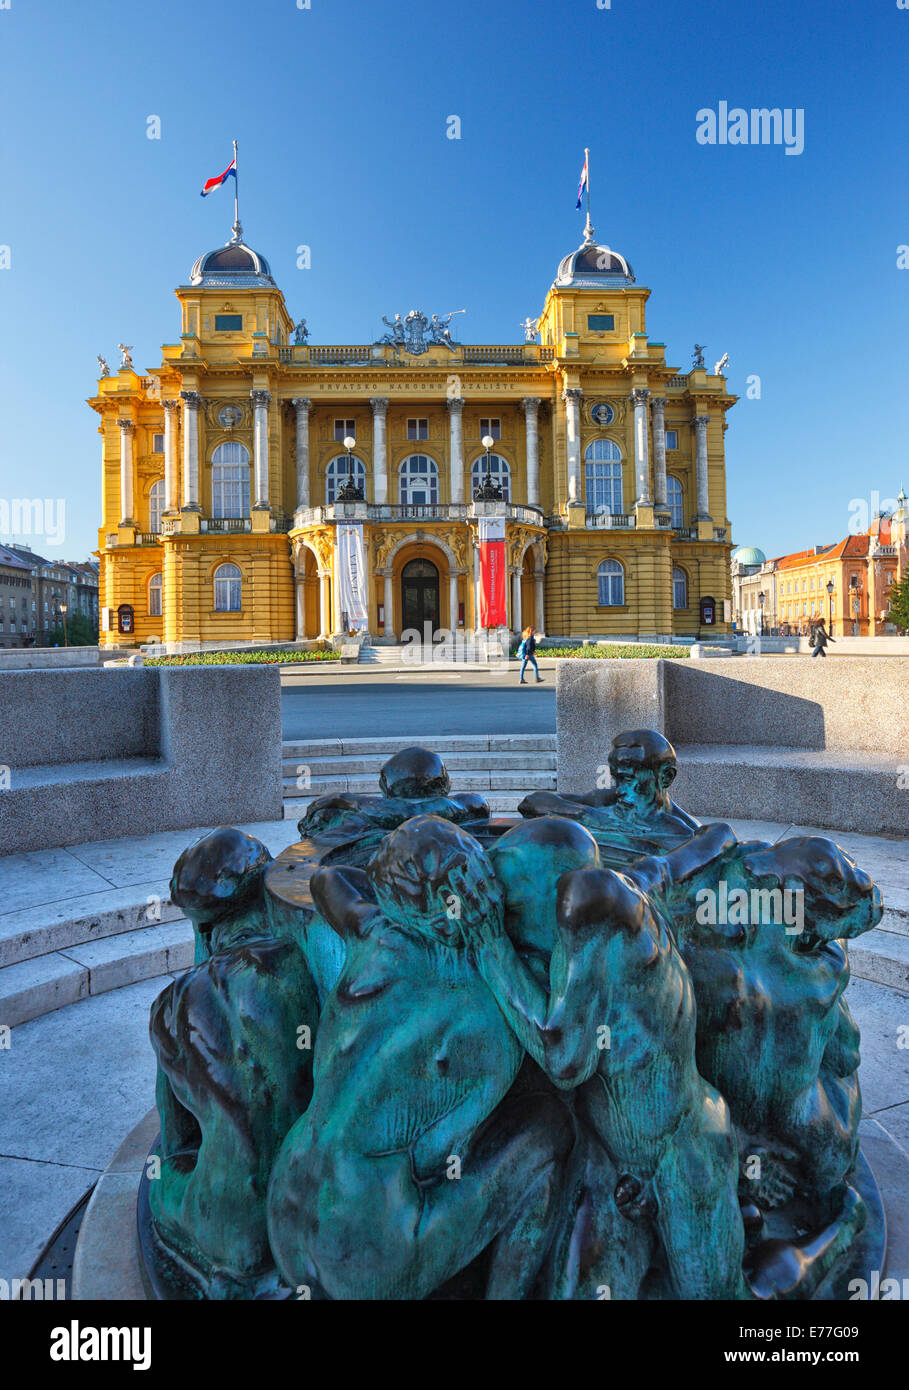 Zagreb town - Theatre HNK, Sculpture, Ivan Mestrovic's Sculpture Fountain of Life - Stock Image